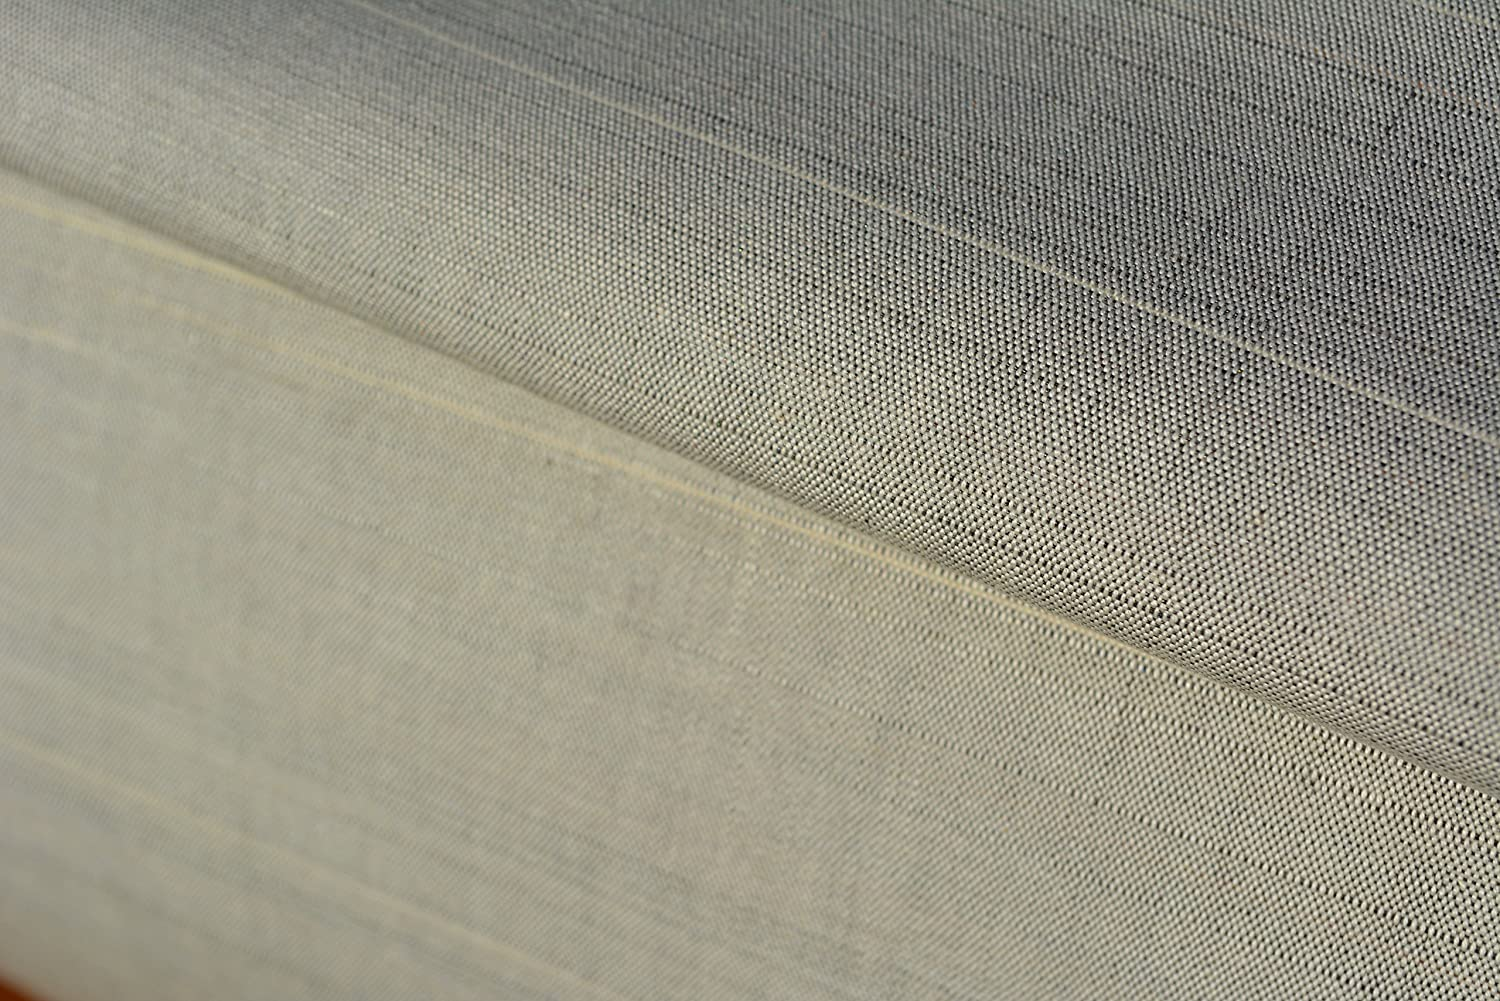 finest available Rovagnati Liguria H45 horse hair and cotton canvas INTERFACING INTERLINING Made in Italy